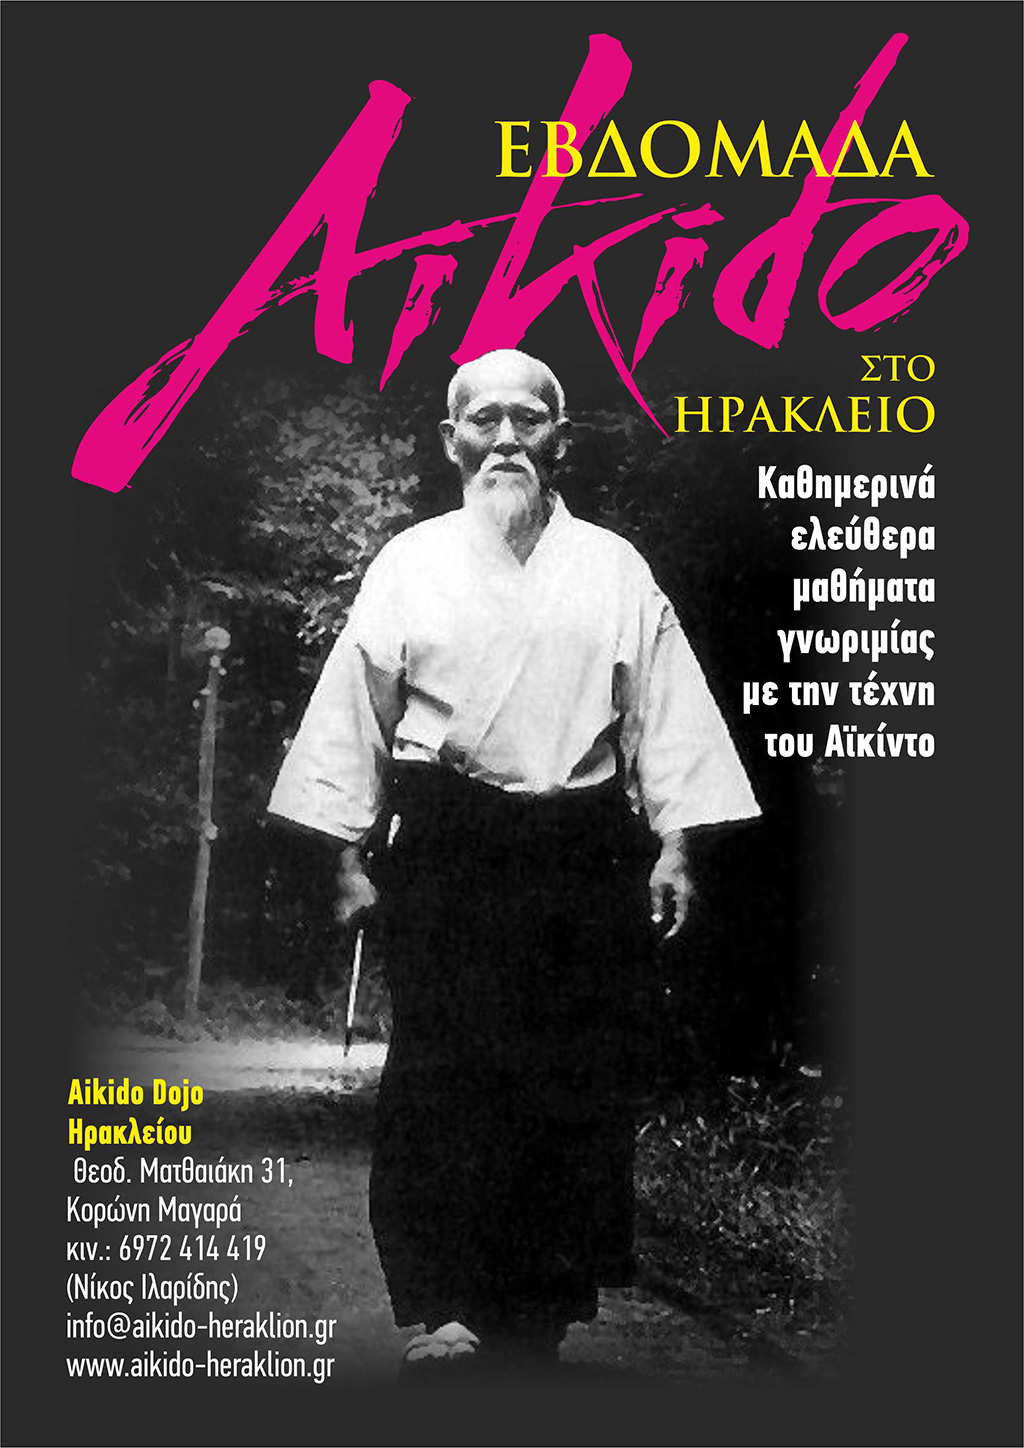 Aikido - Aiado - Heraklion Center